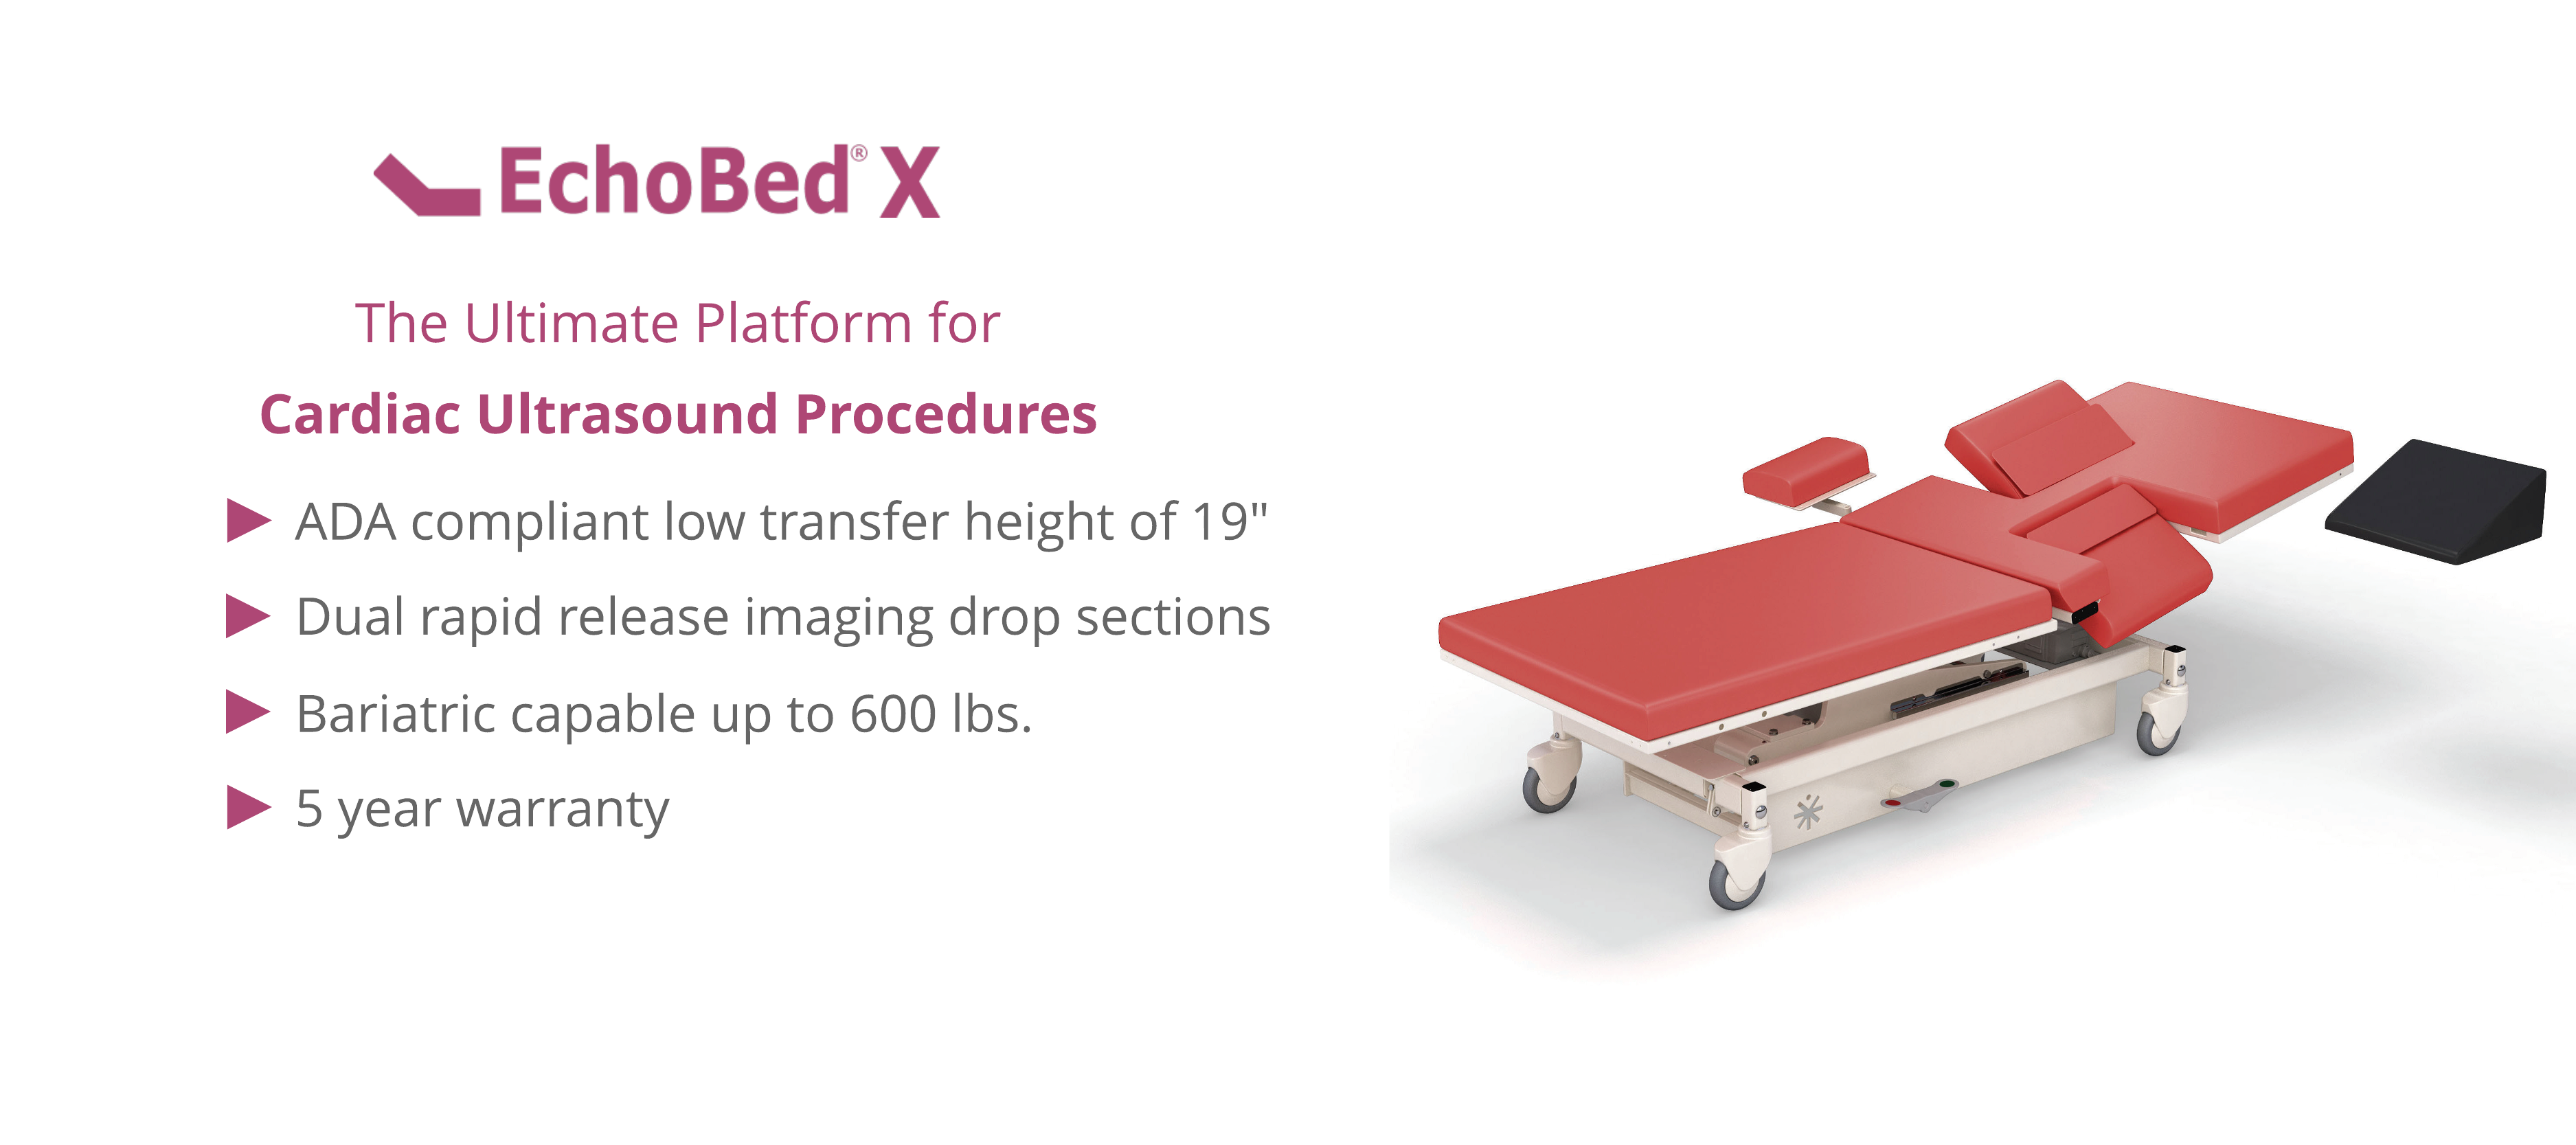 A platform with red cushions for cardiac ultrasounds